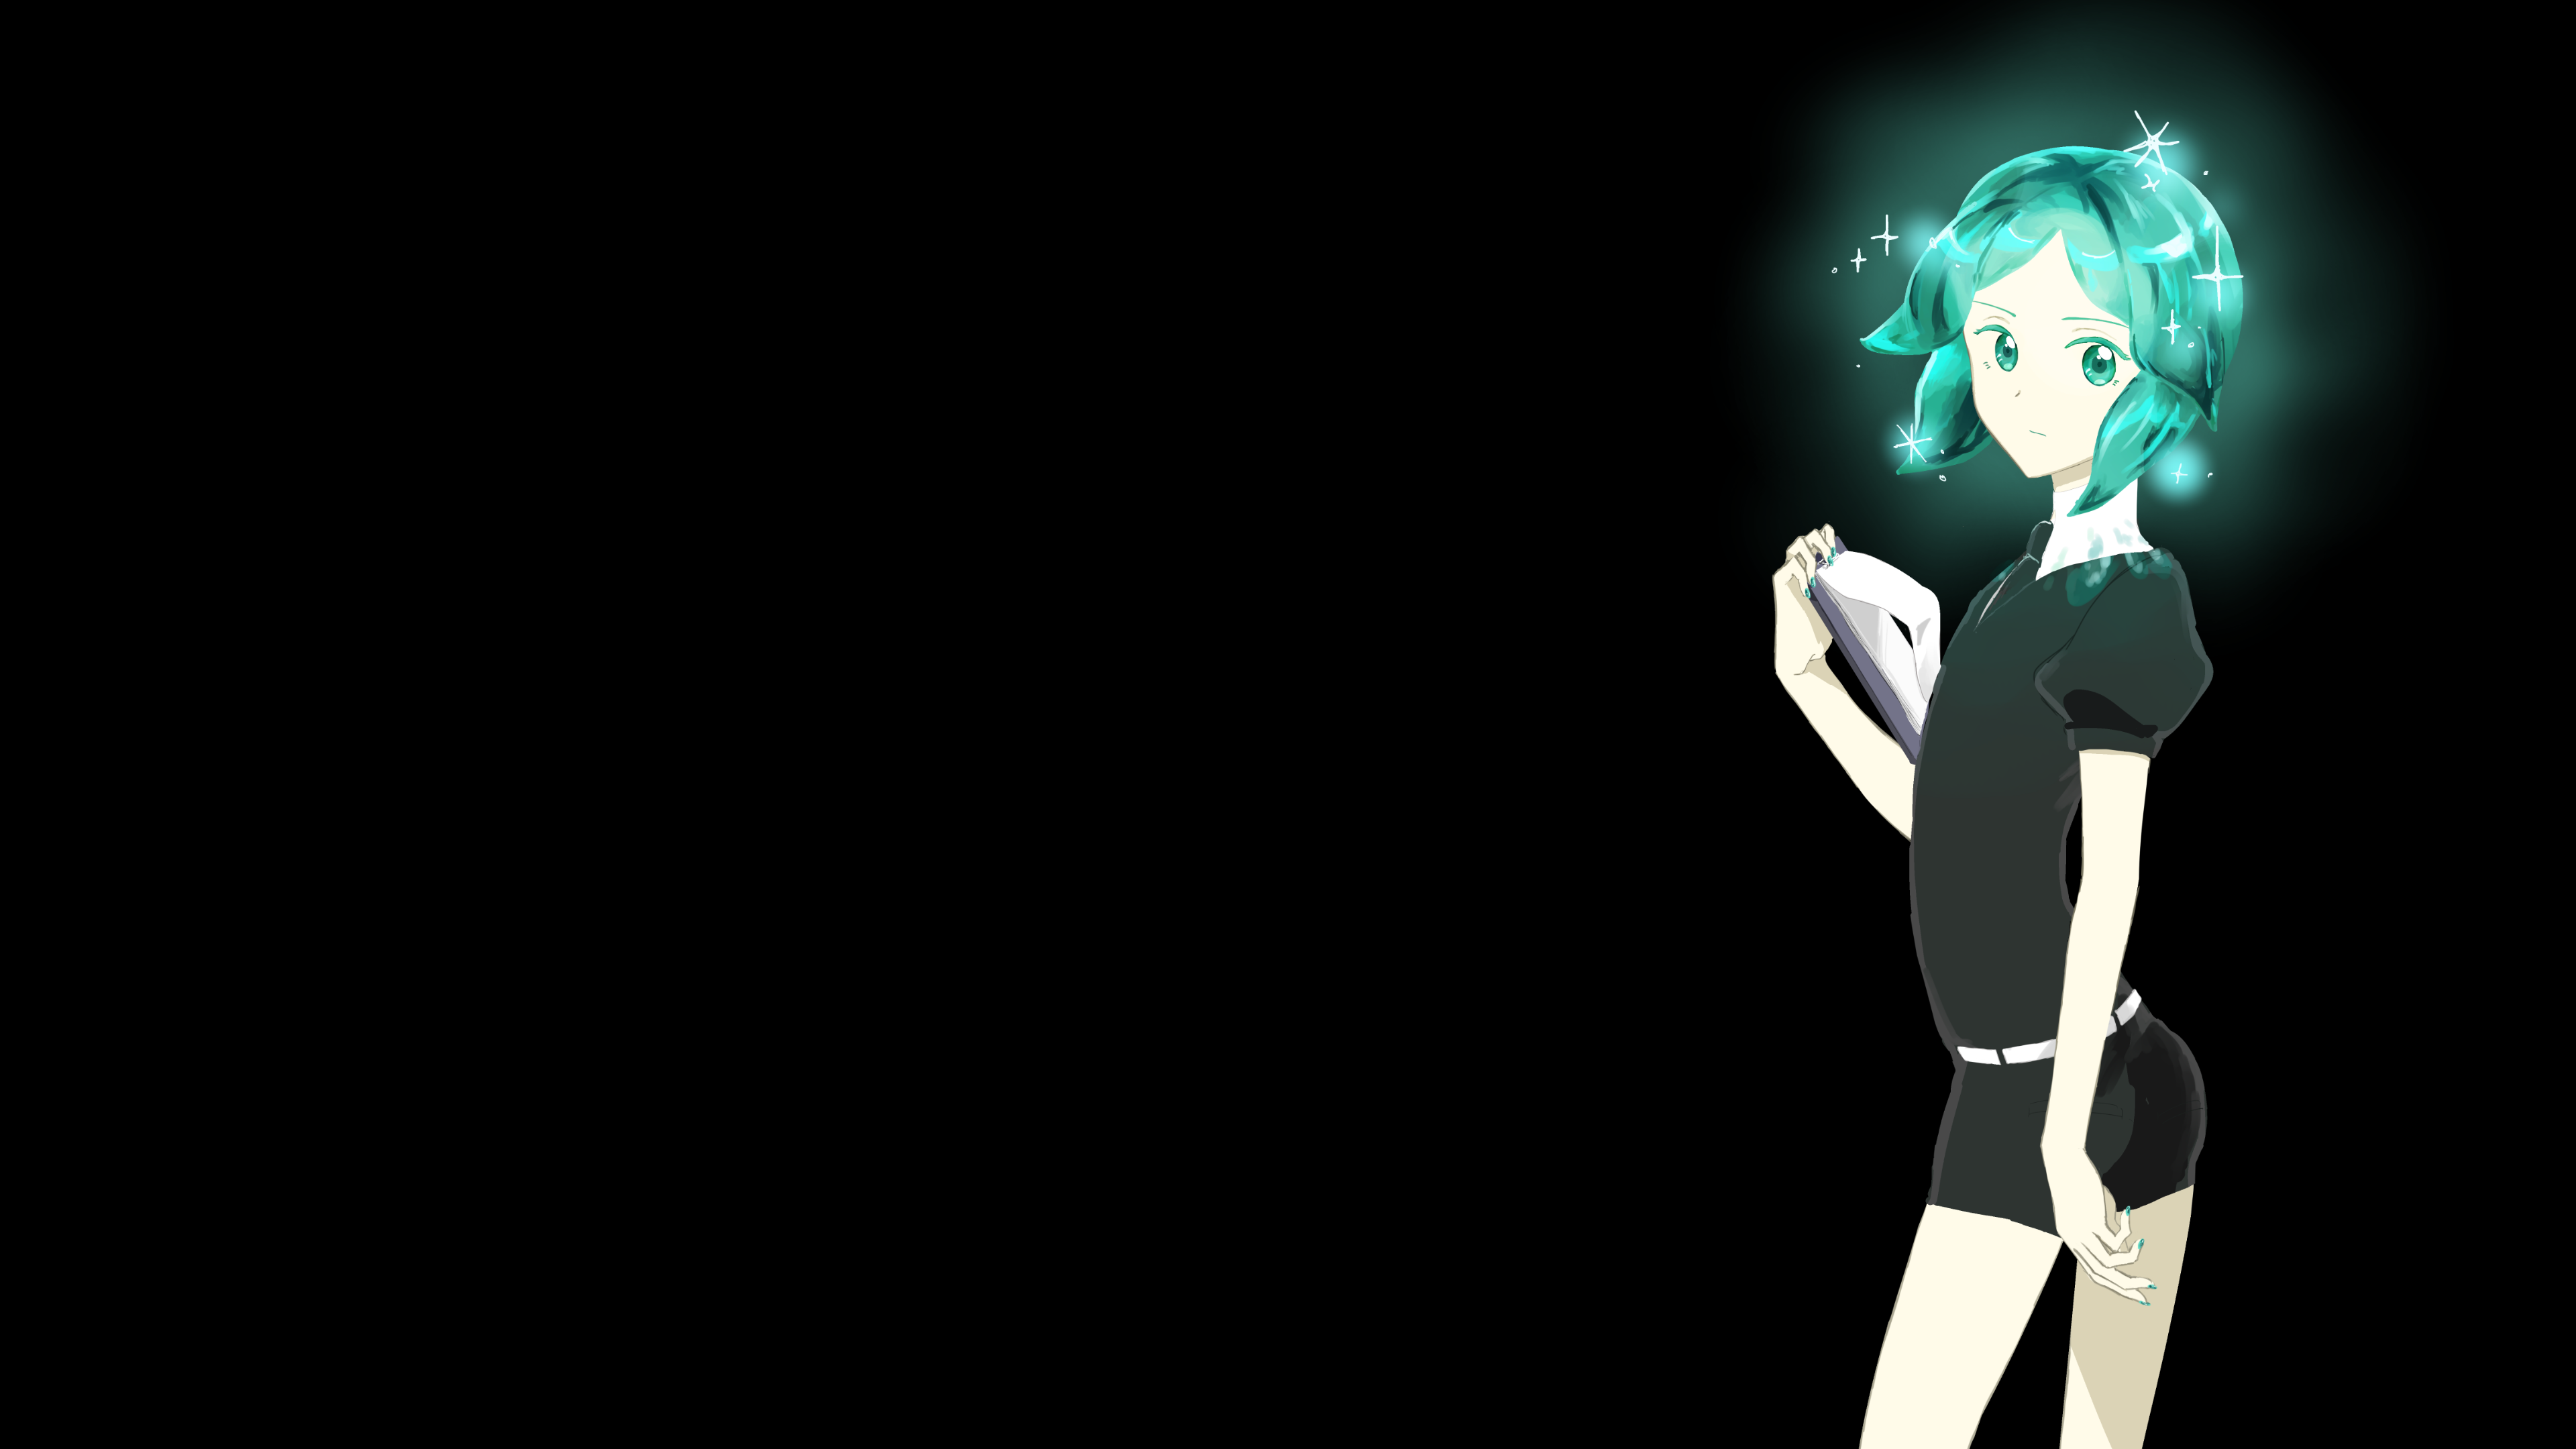 Black Background Anime Anime Girls Houseki No Kuni Phos Houseki No Kuni Aqua Hair Wallpaper Resolution 3840x2160 Id 124831 Wallha Com